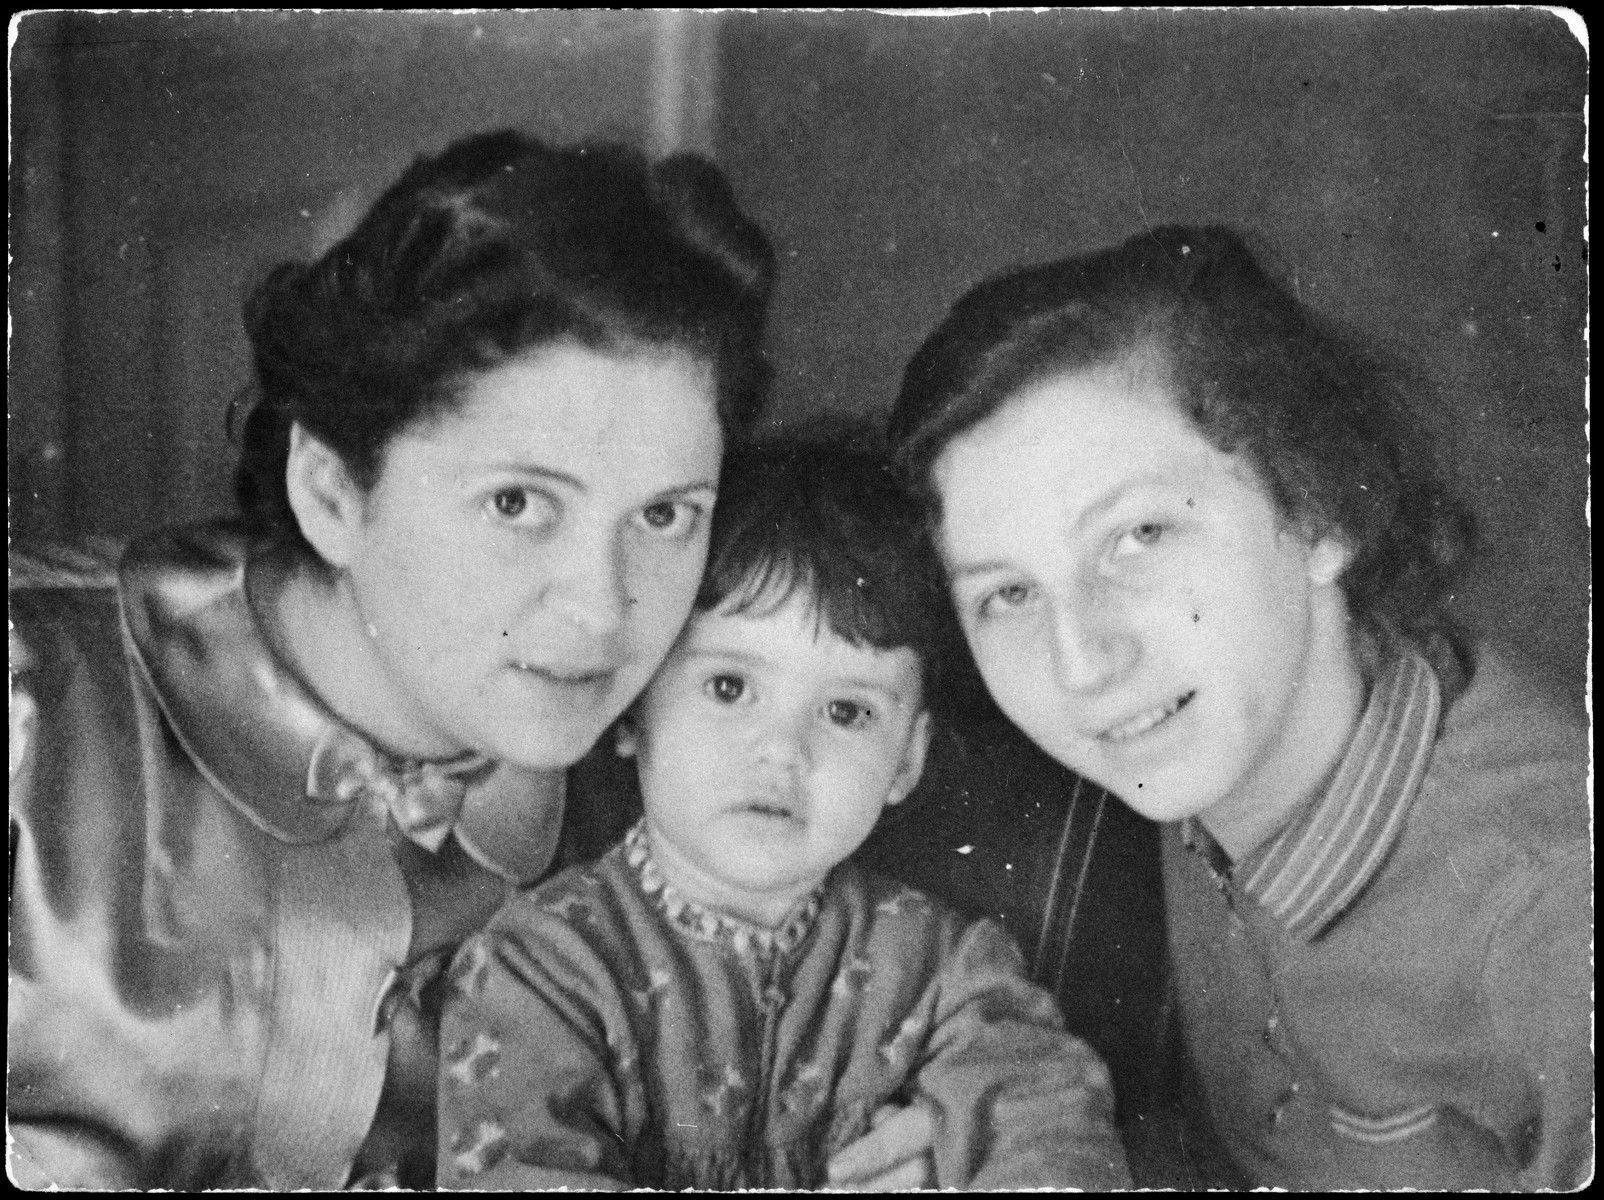 Close-up portrait of two German Jewish women and a young baby girl.  Pictured from left to right are Gertrude Rubenstein, her daughter Ruth Marion and the nanny, also Ruth who perished during the Holocaust